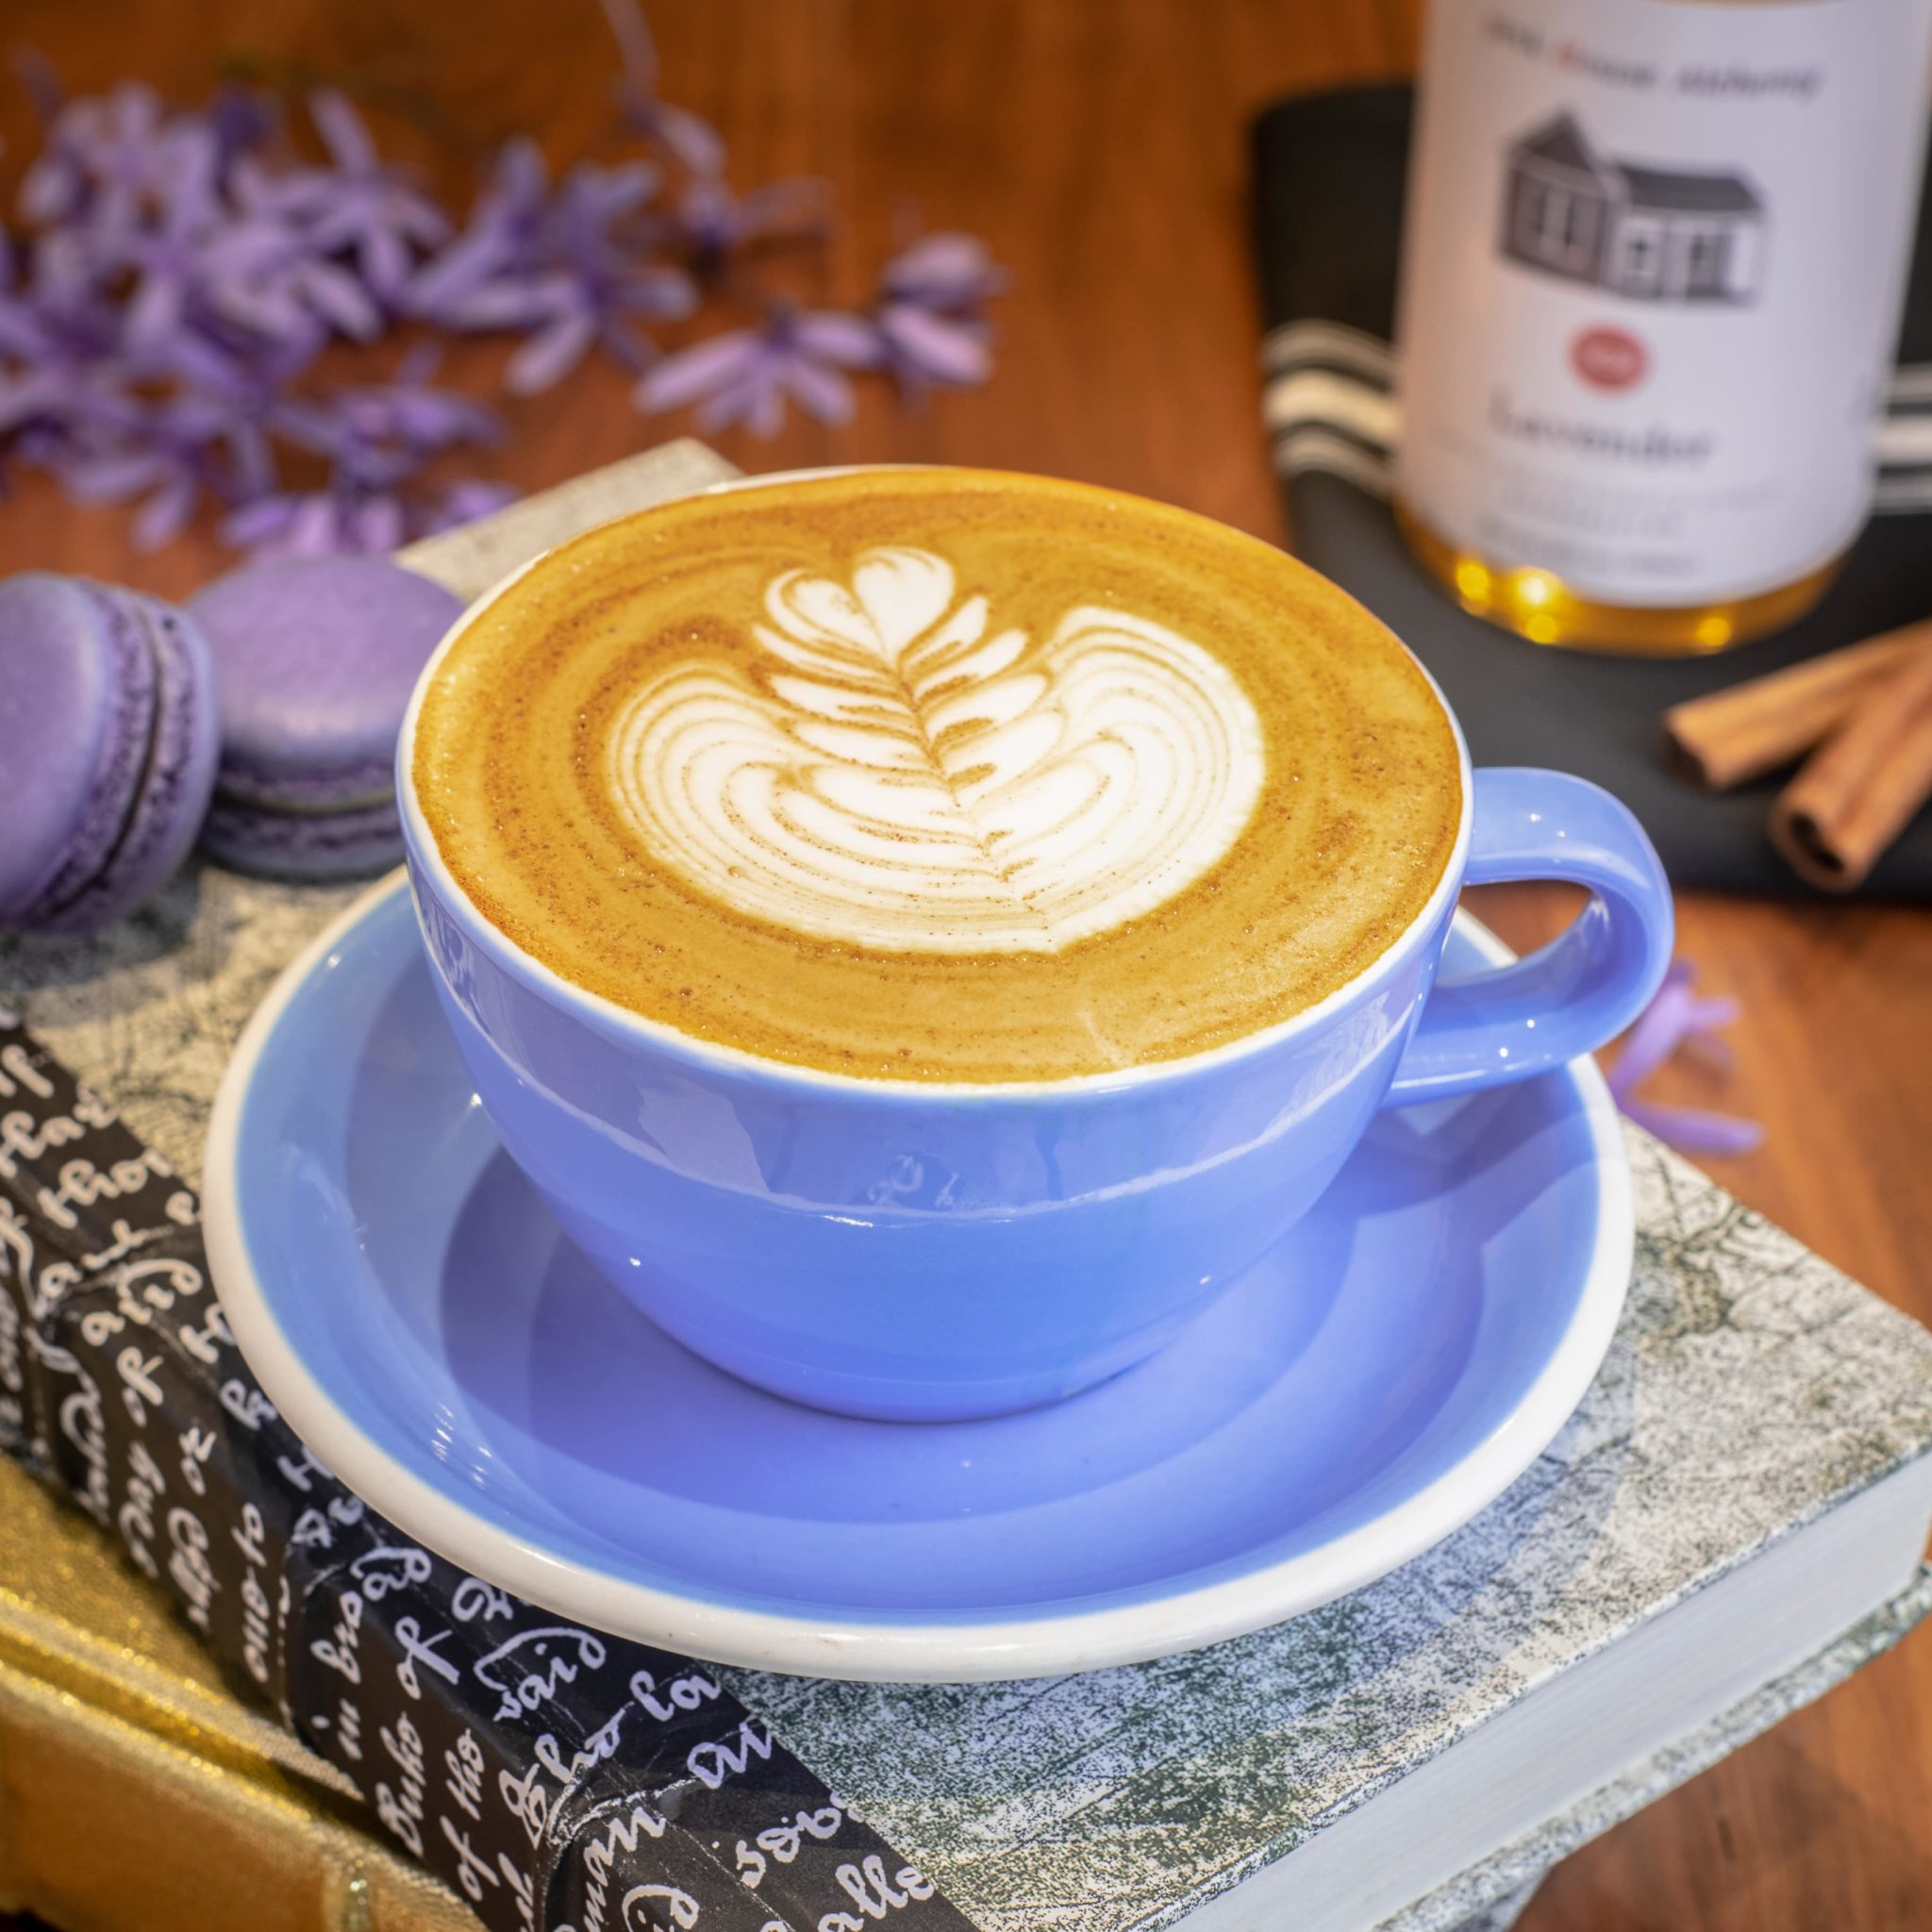 Craft Coffee Near Me - The Glass Knife in Winter Park, FL - Lavender Cinnamon Latte